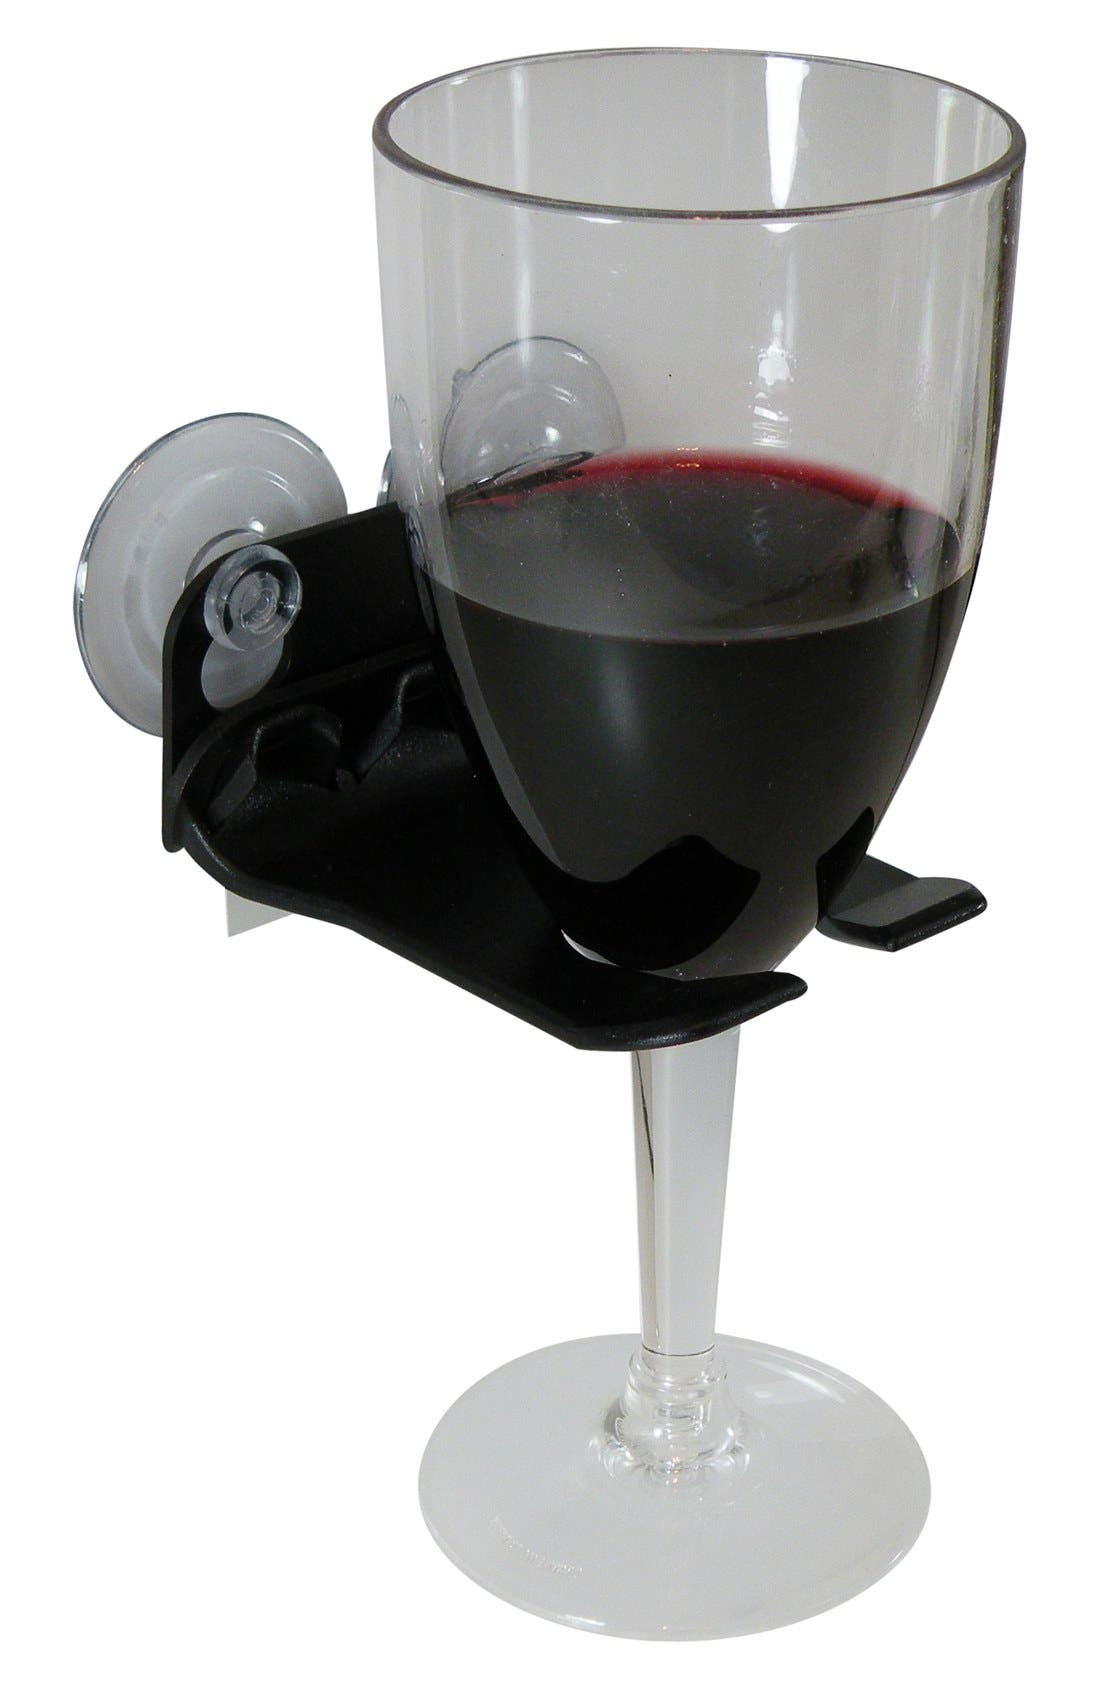 Bathtub Wine Glass Holder,                             Main thumbnail 1, color,                             001